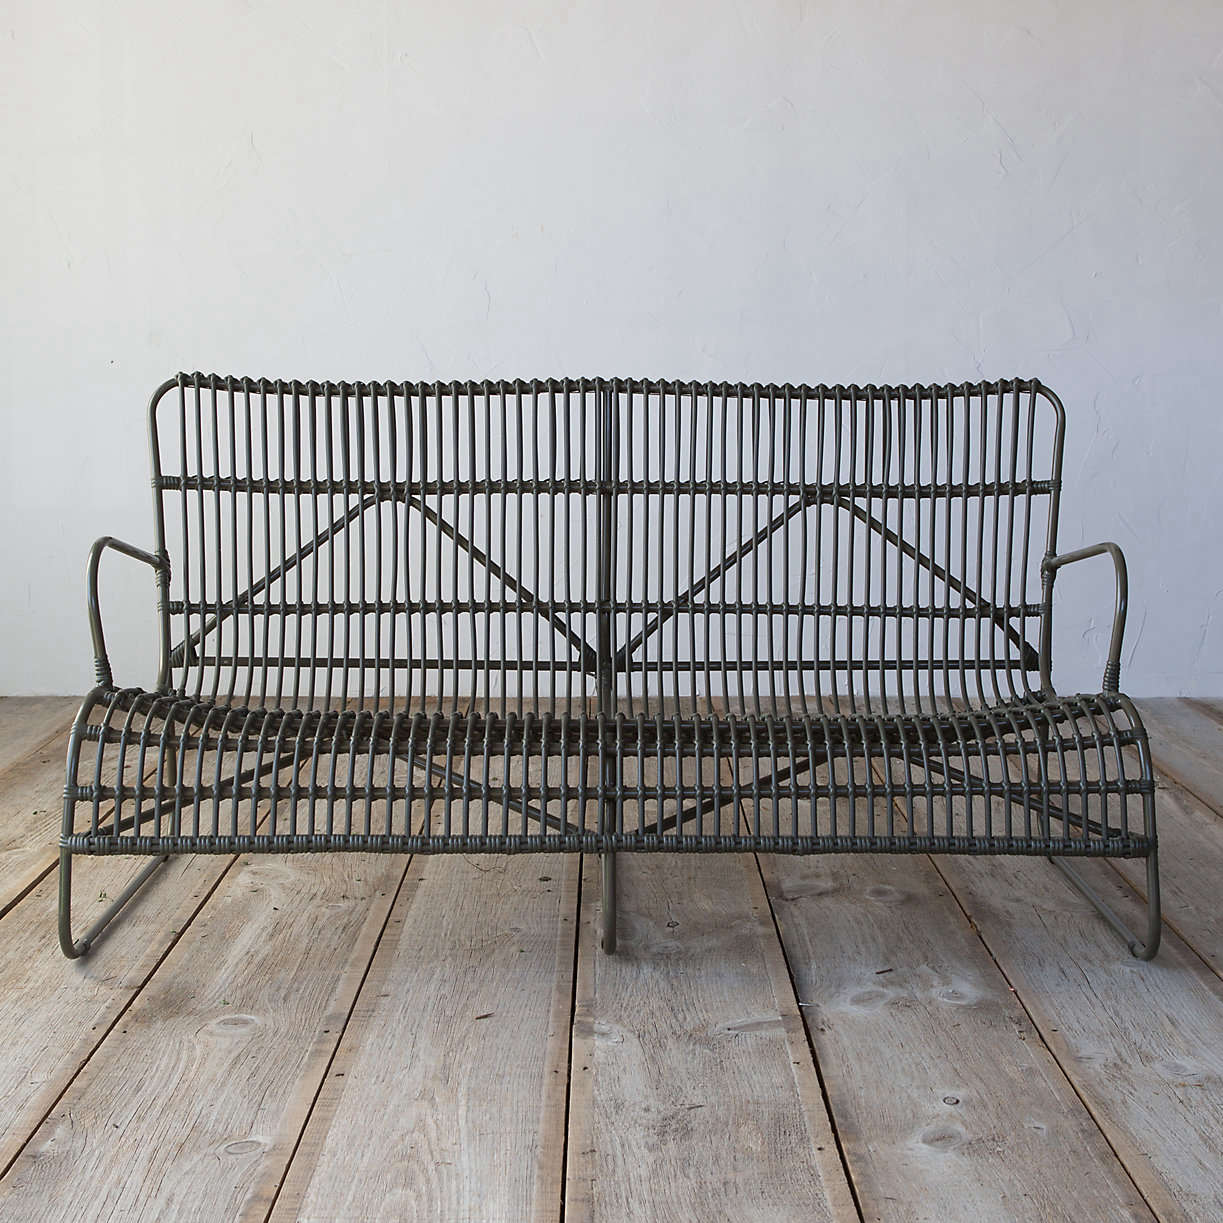 An Open Weave All Weather Wicker Sofa stands up to the weather, withpolyester rattan woven around a powder-coated aluminum frame. It measures 58.loading=